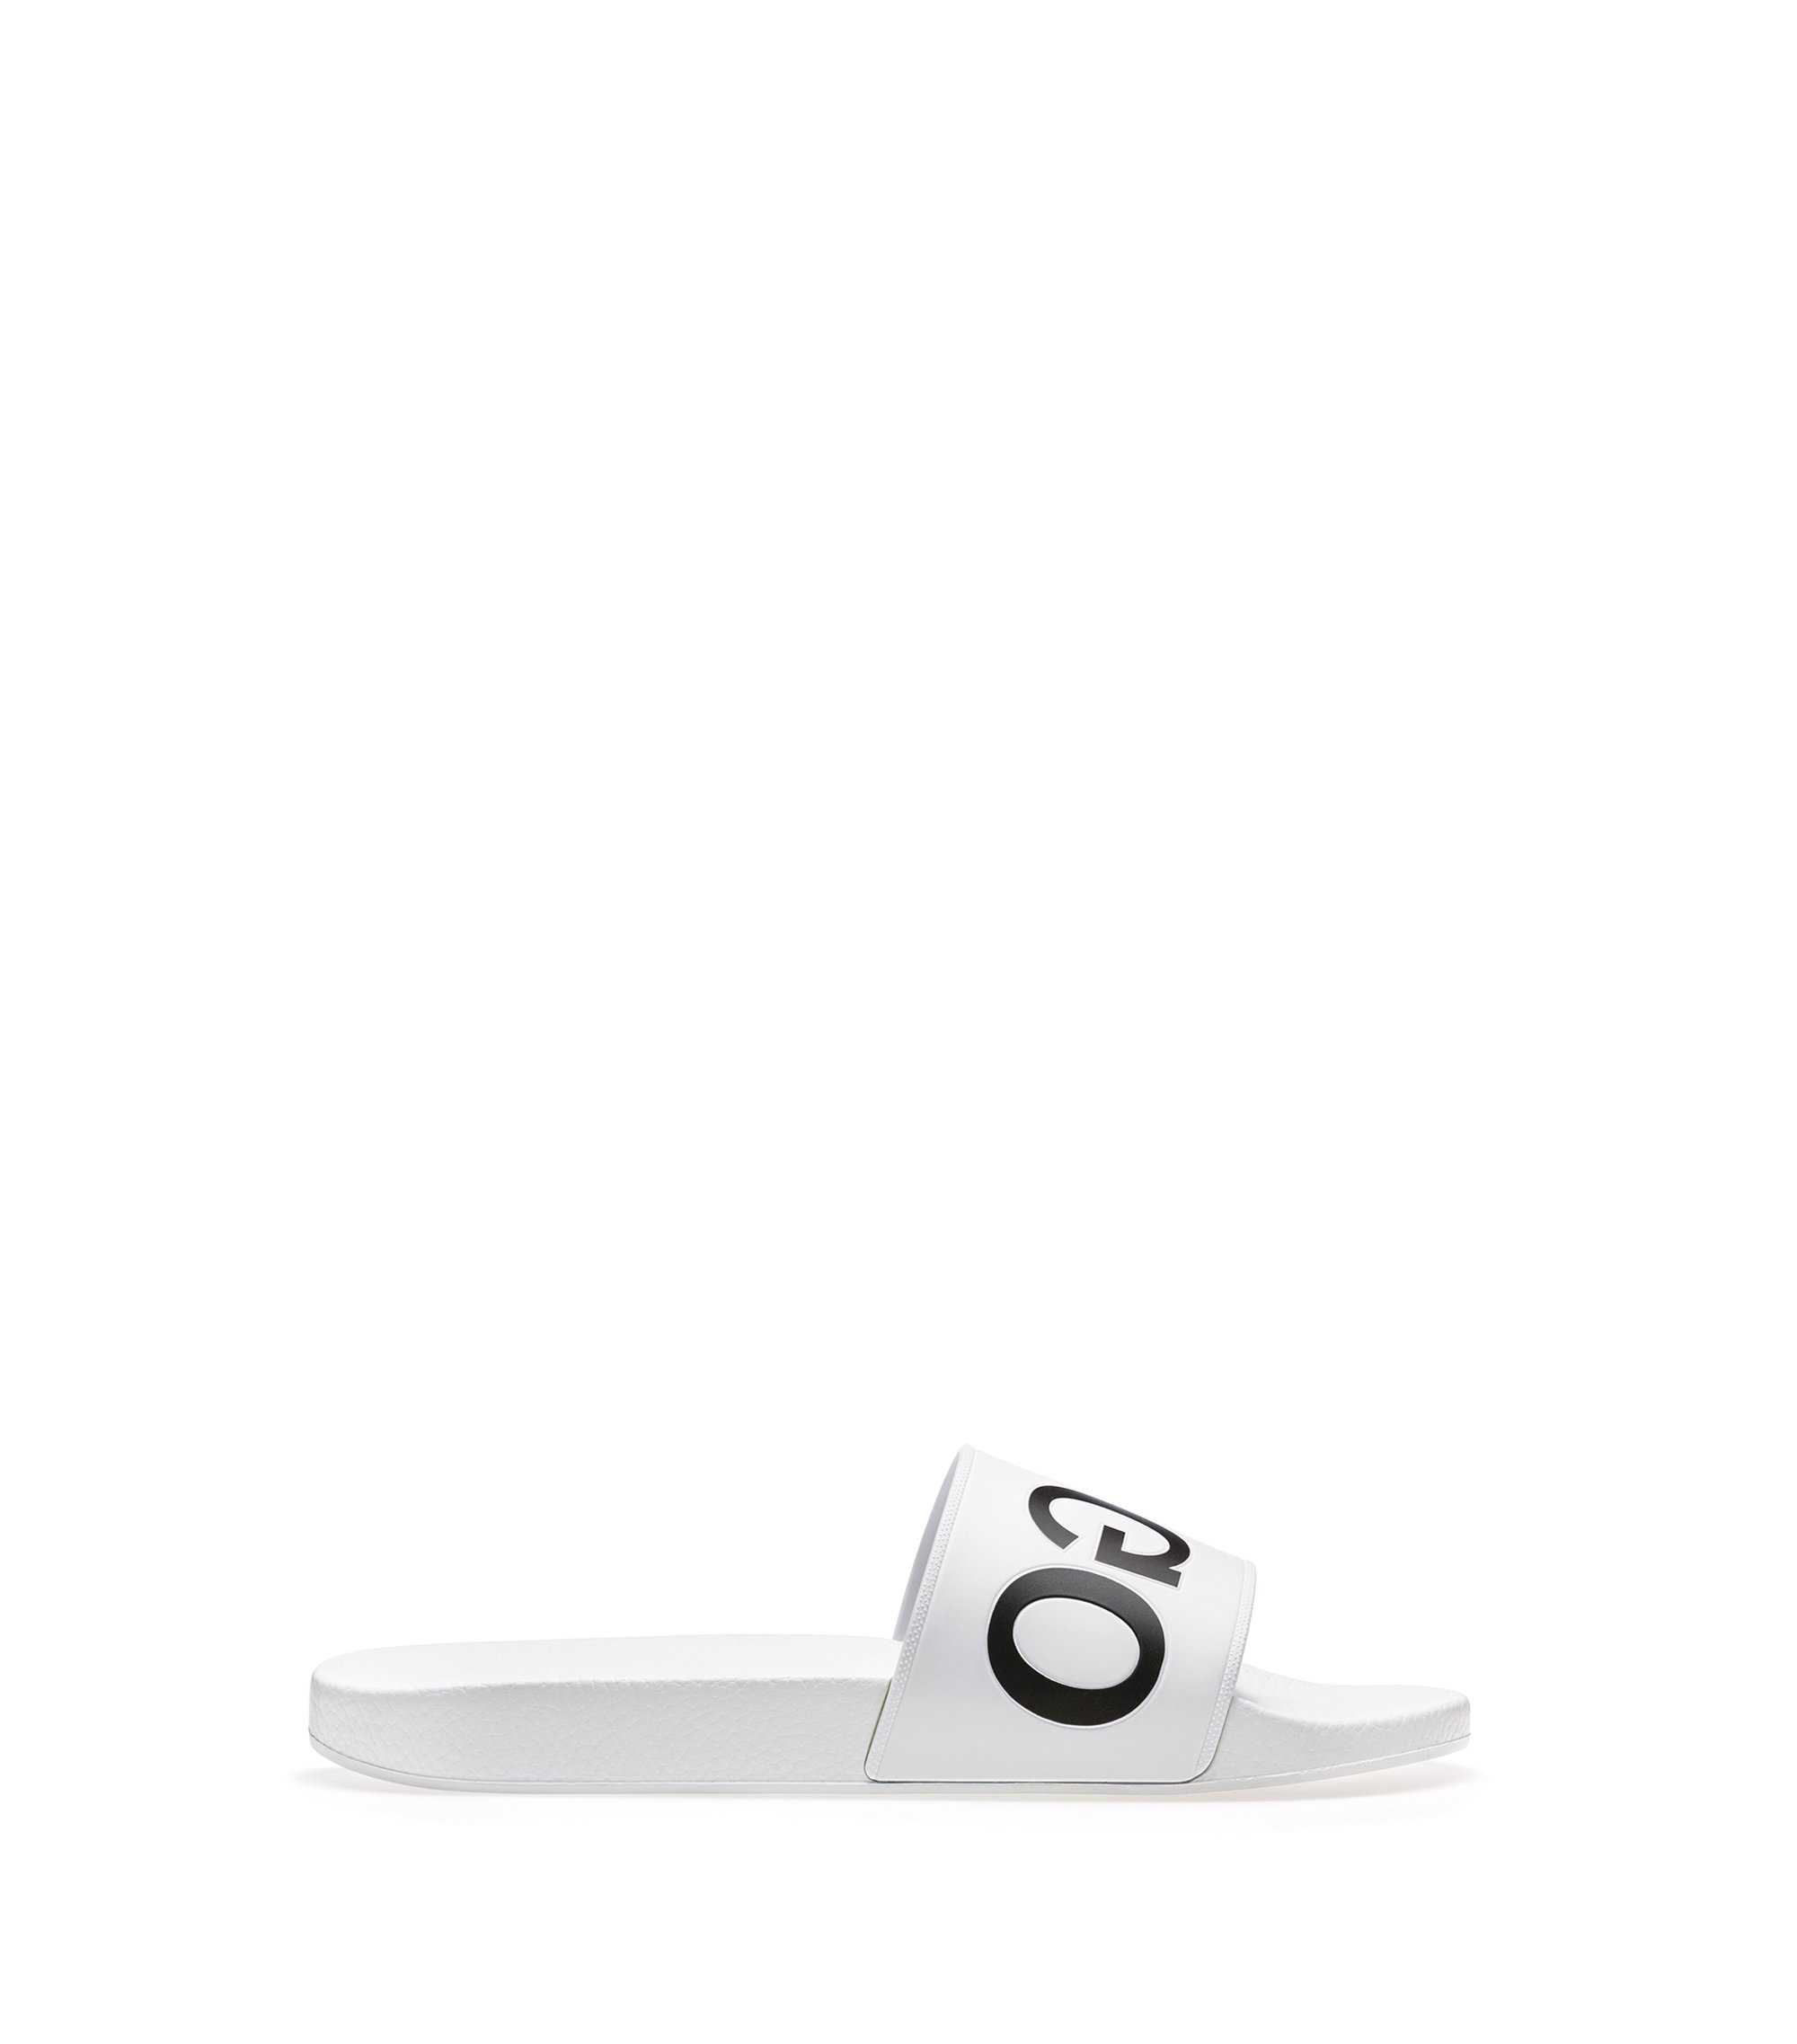 Rubber Slip-On Sandals | Timeout Slip RB, White